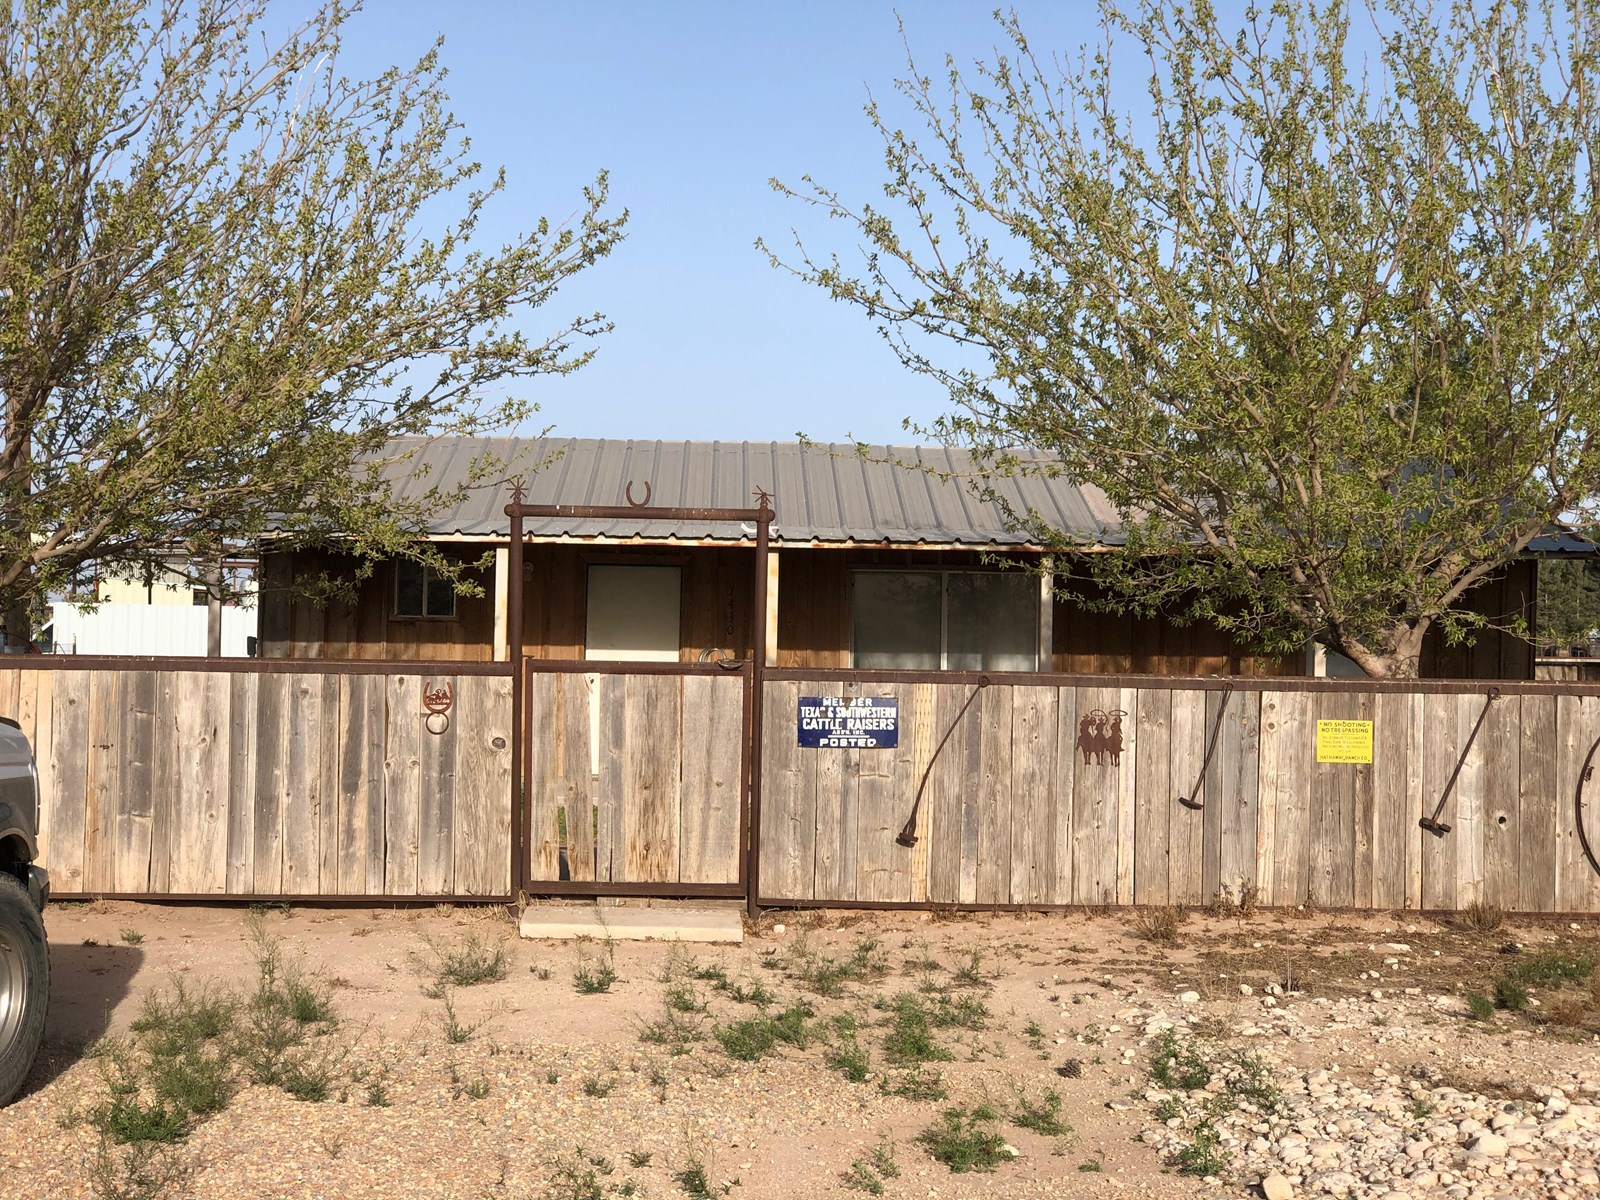 Horse Property For Sale in Carlsbad NM, Acreage, Arena, Barn